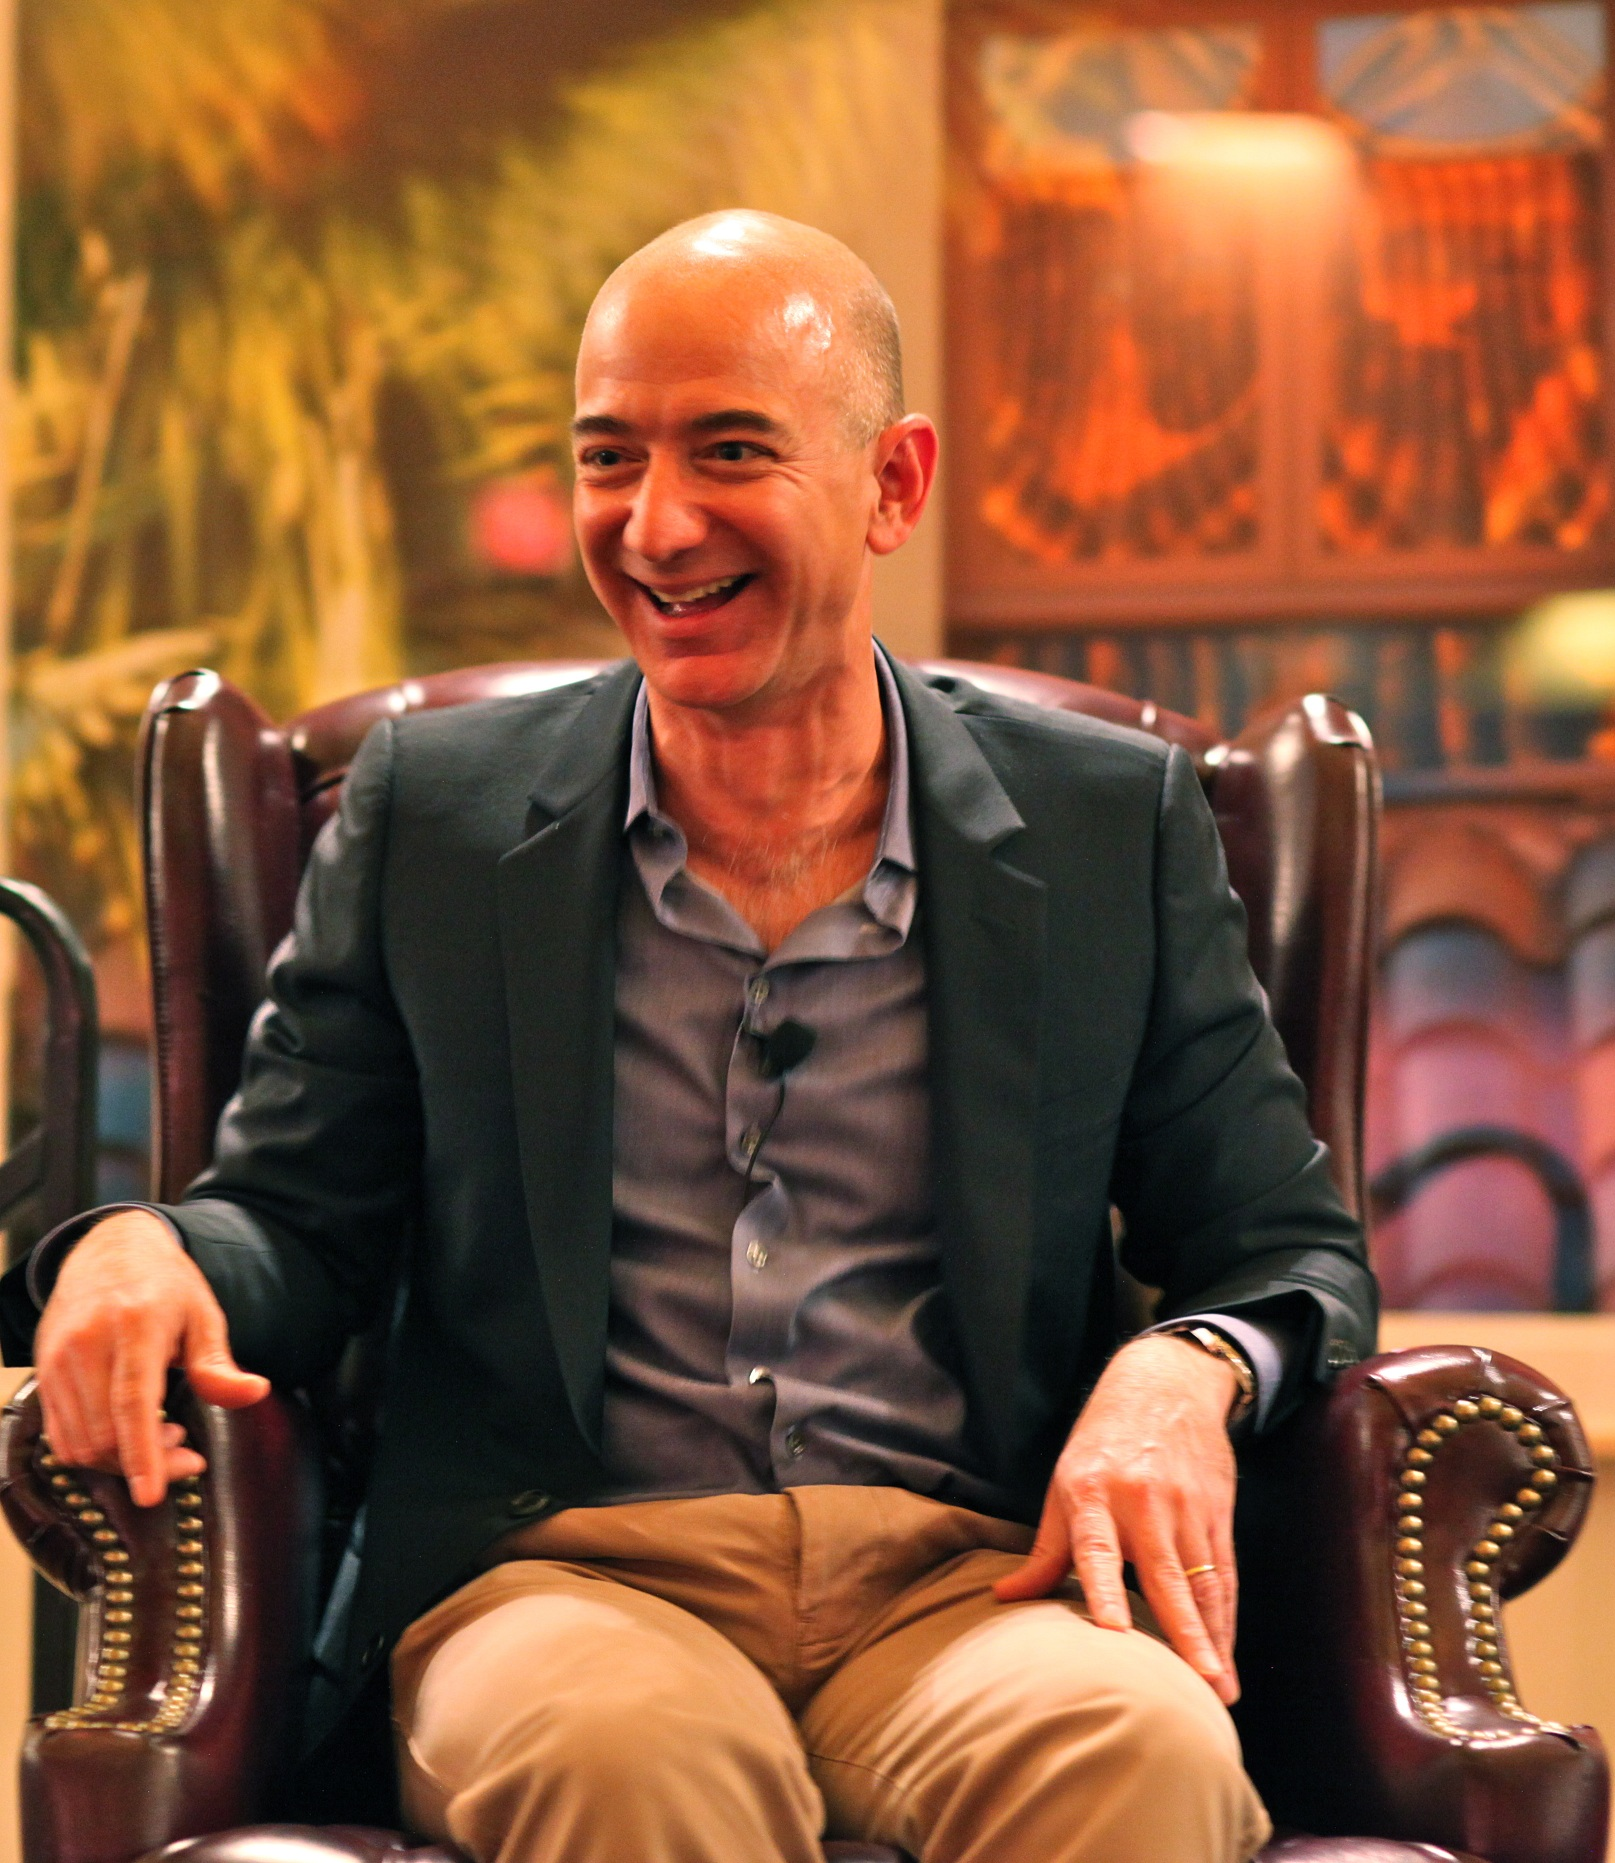 Jeff Bezos of Amazon (Photo by Jurvetson)